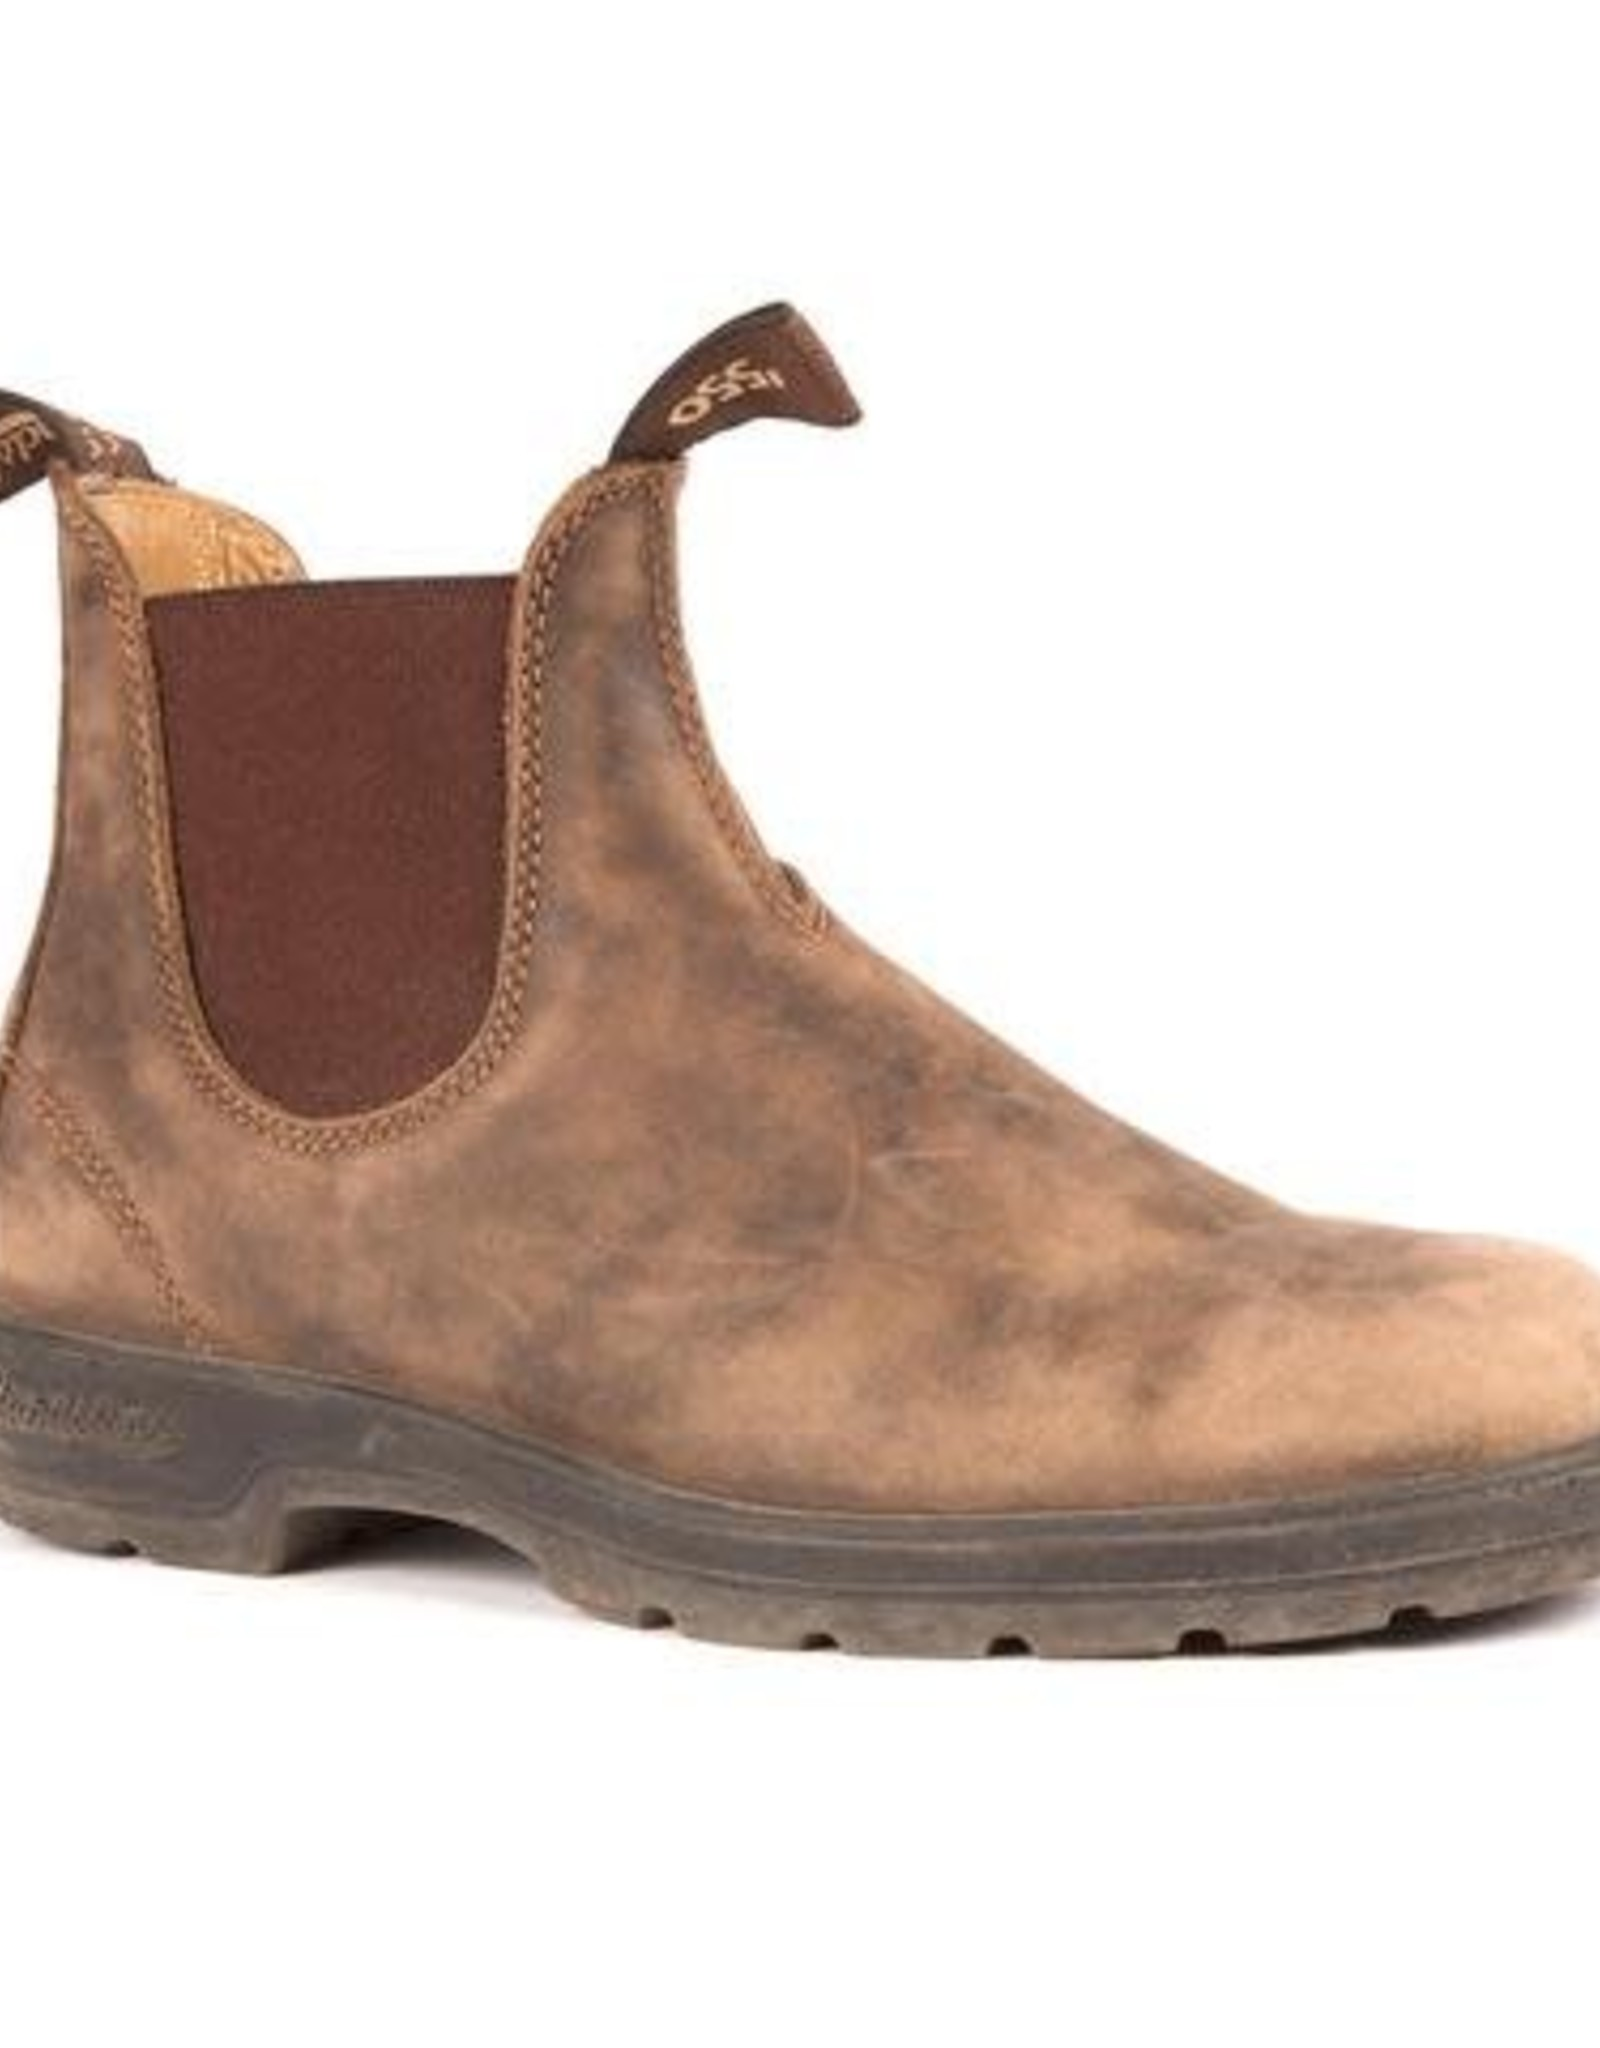 Blundstone Blundstone, Leather Lined Rustic Brown 585, 1WIDTH, 10.5